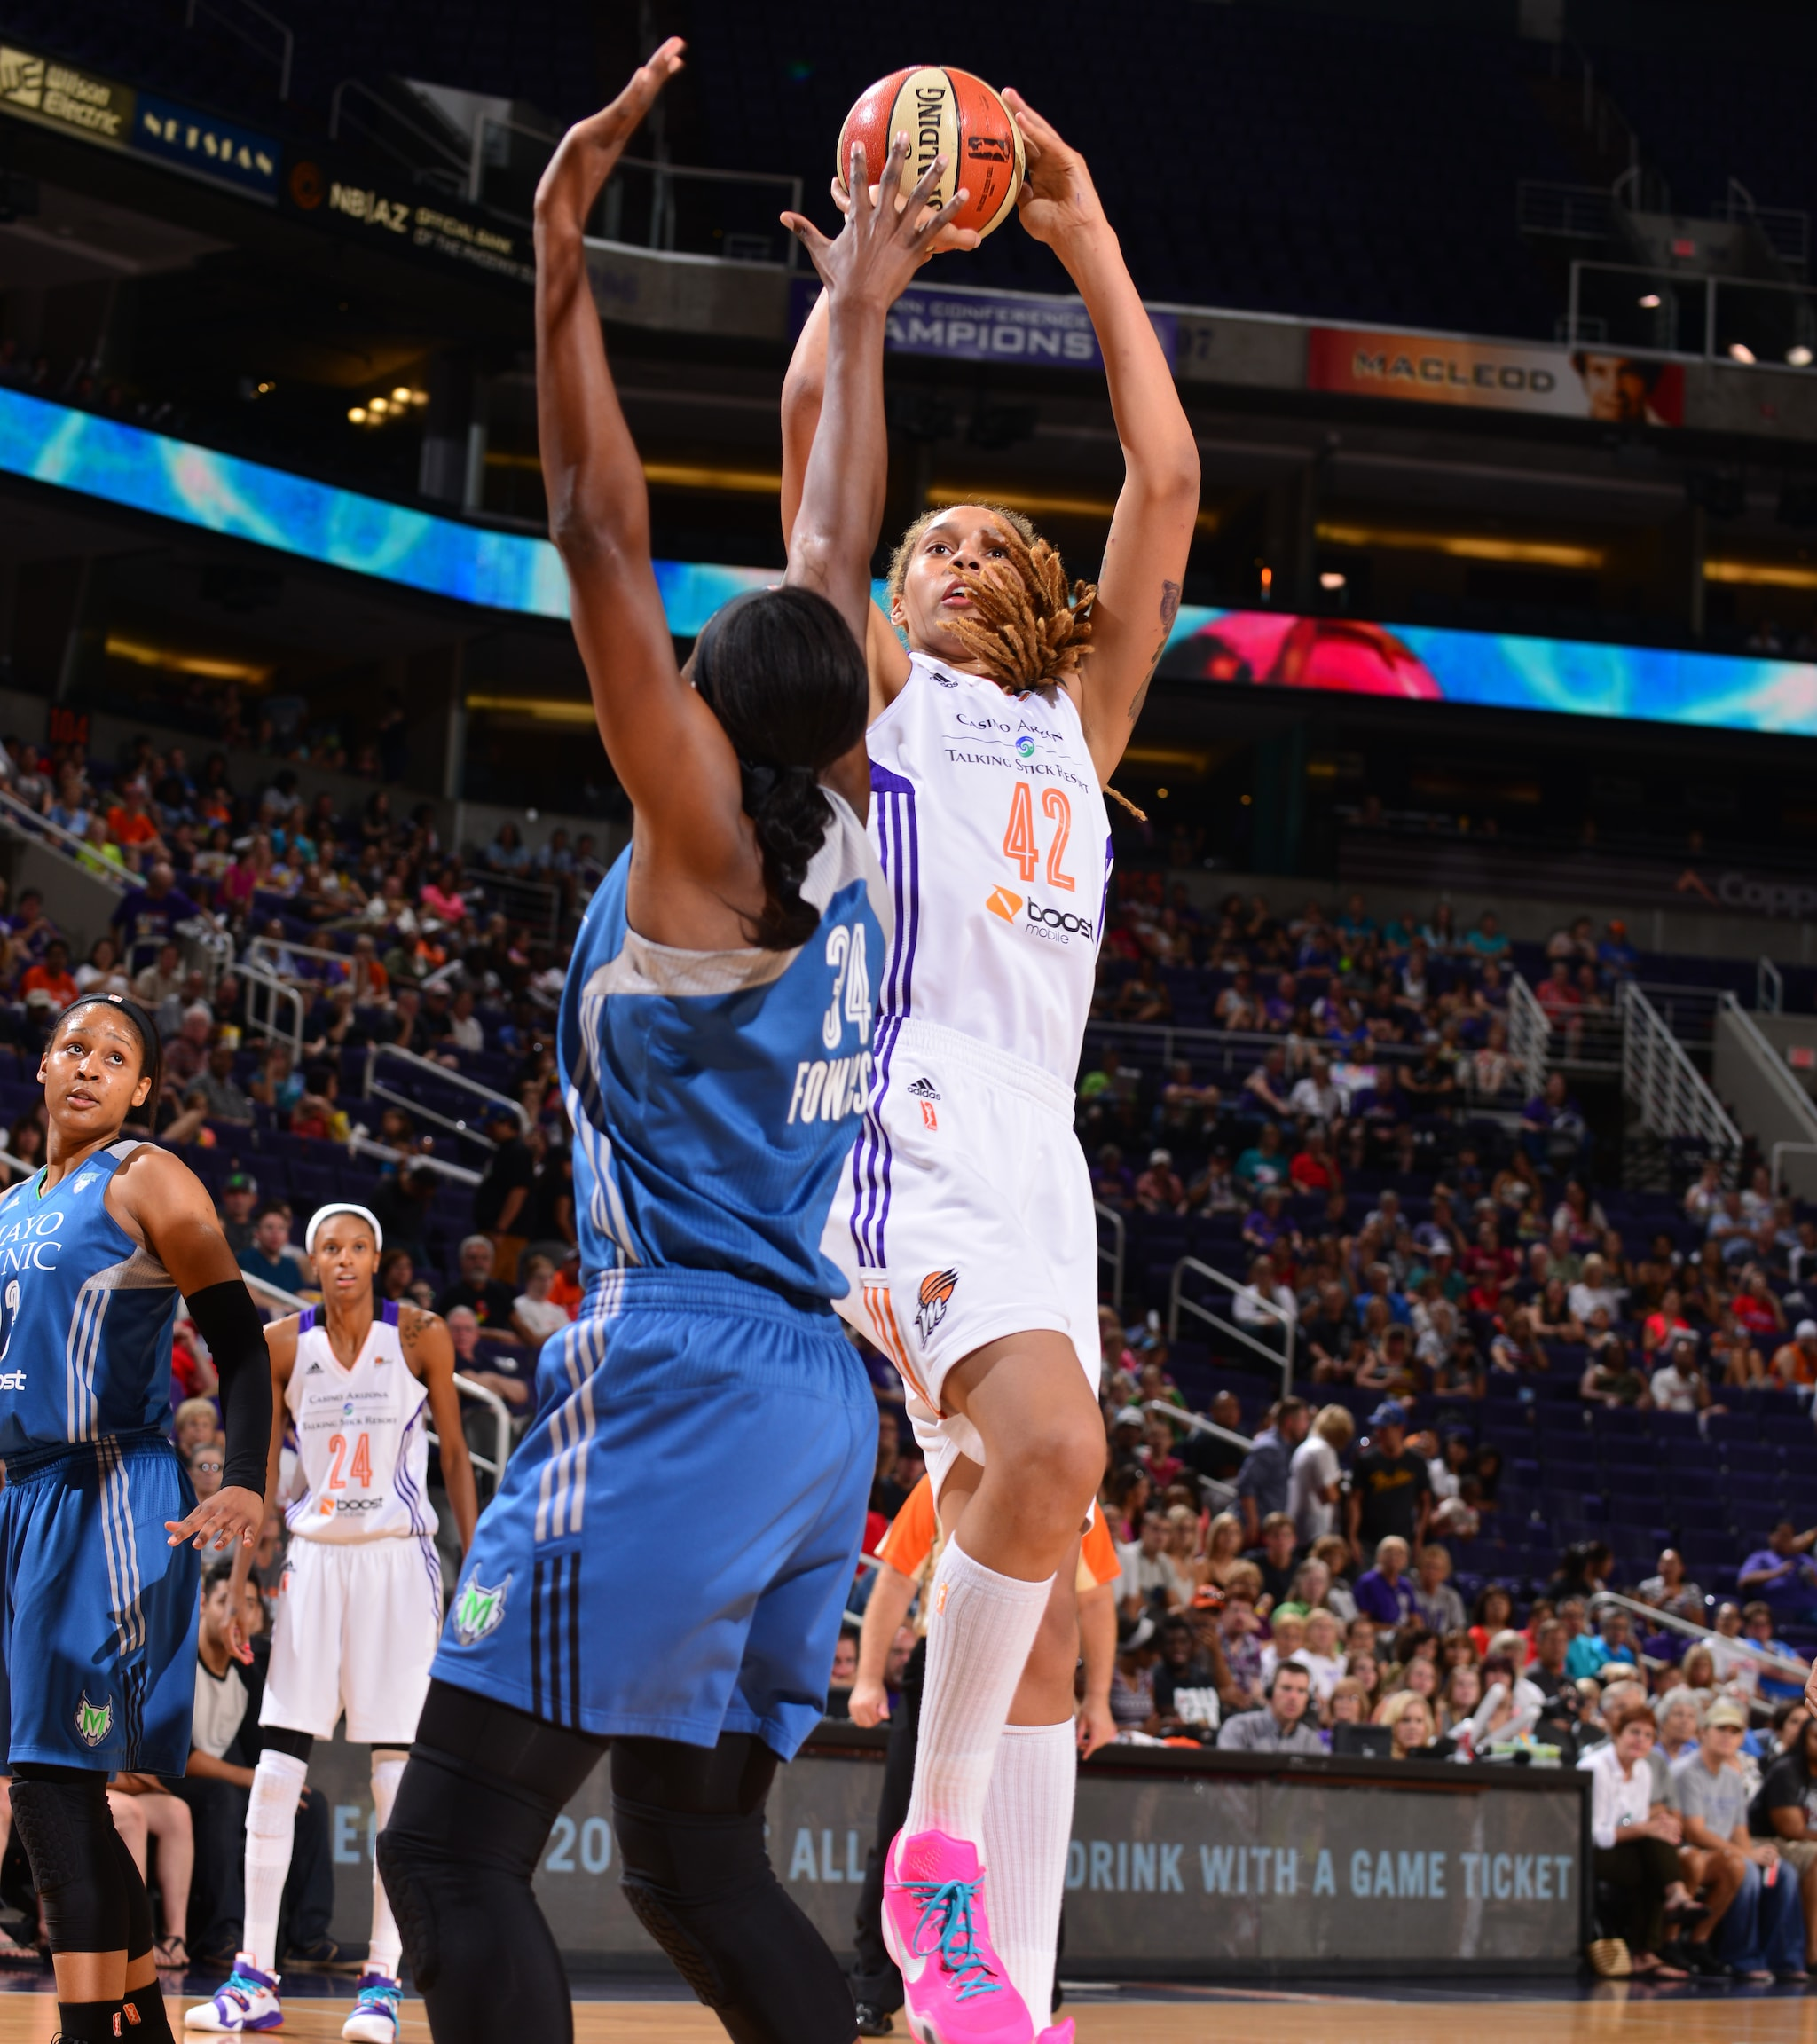 Mercury center Brittney Griner notched a double-double on Sunday night, helping to lead Phoenix to a 79-67 victory over the Lynx. Griner finished with 10 points, 11 rebounds and a game-high six blocked shots.